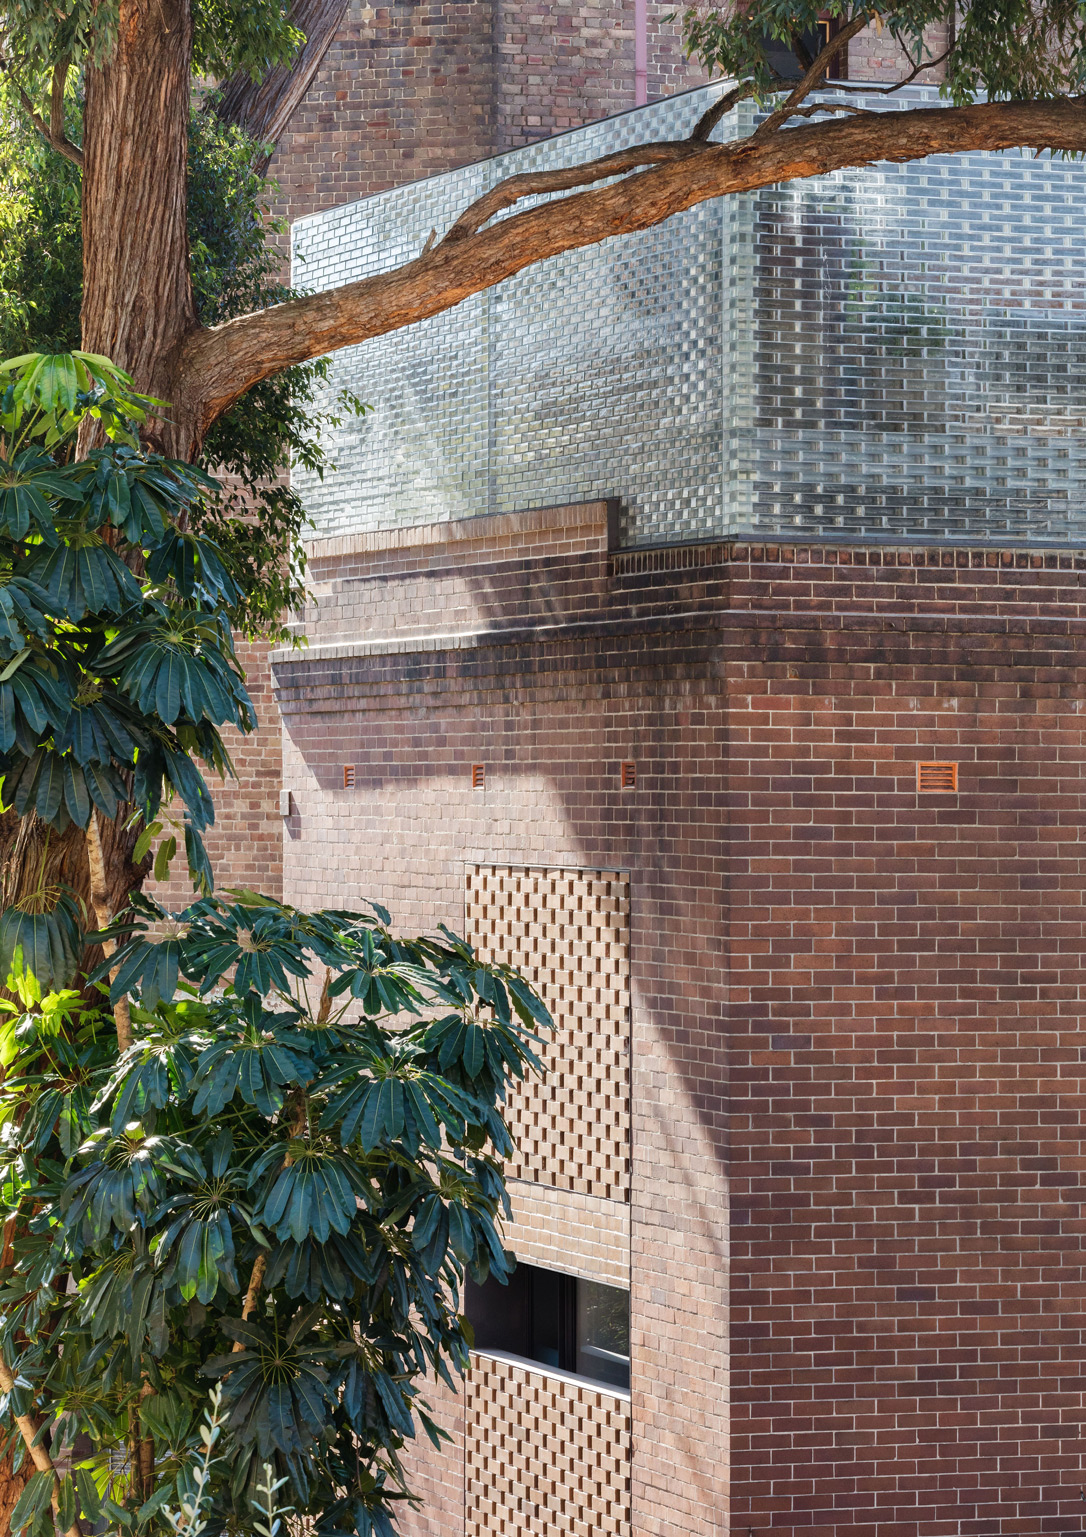 Extruding The Traditional Red Brick Exterior Upwards Into A Crown Of Glass Bricks That Are Softly Illuminated At Night, Semi Translucent